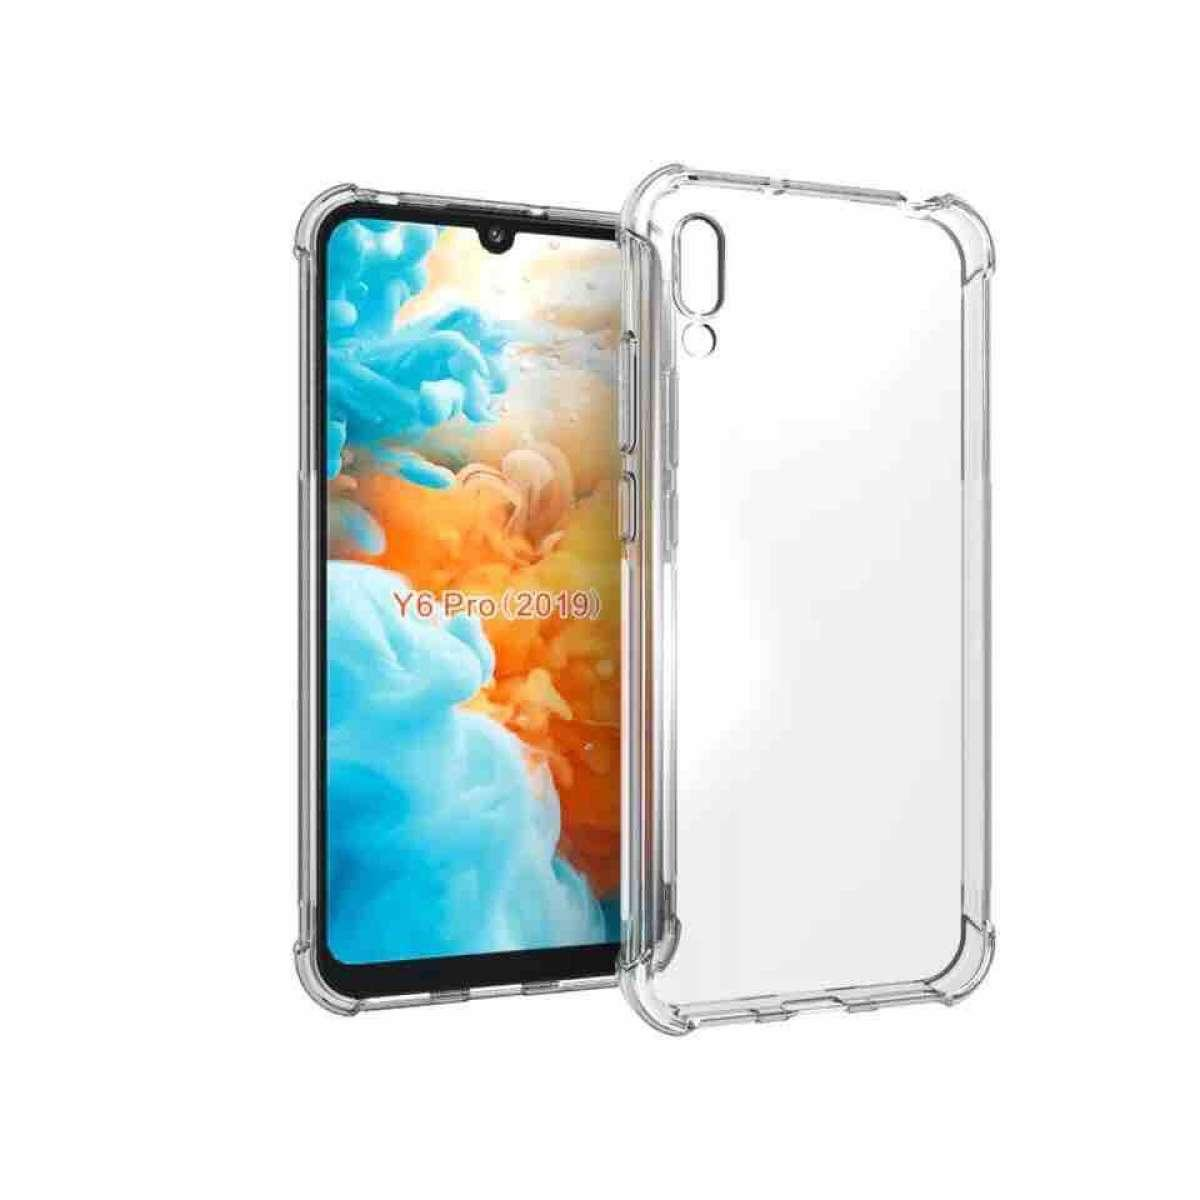 huge selection of aee49 4e12f HUAWEI Y6 PRO 2019 SHOCKPROOF CASE